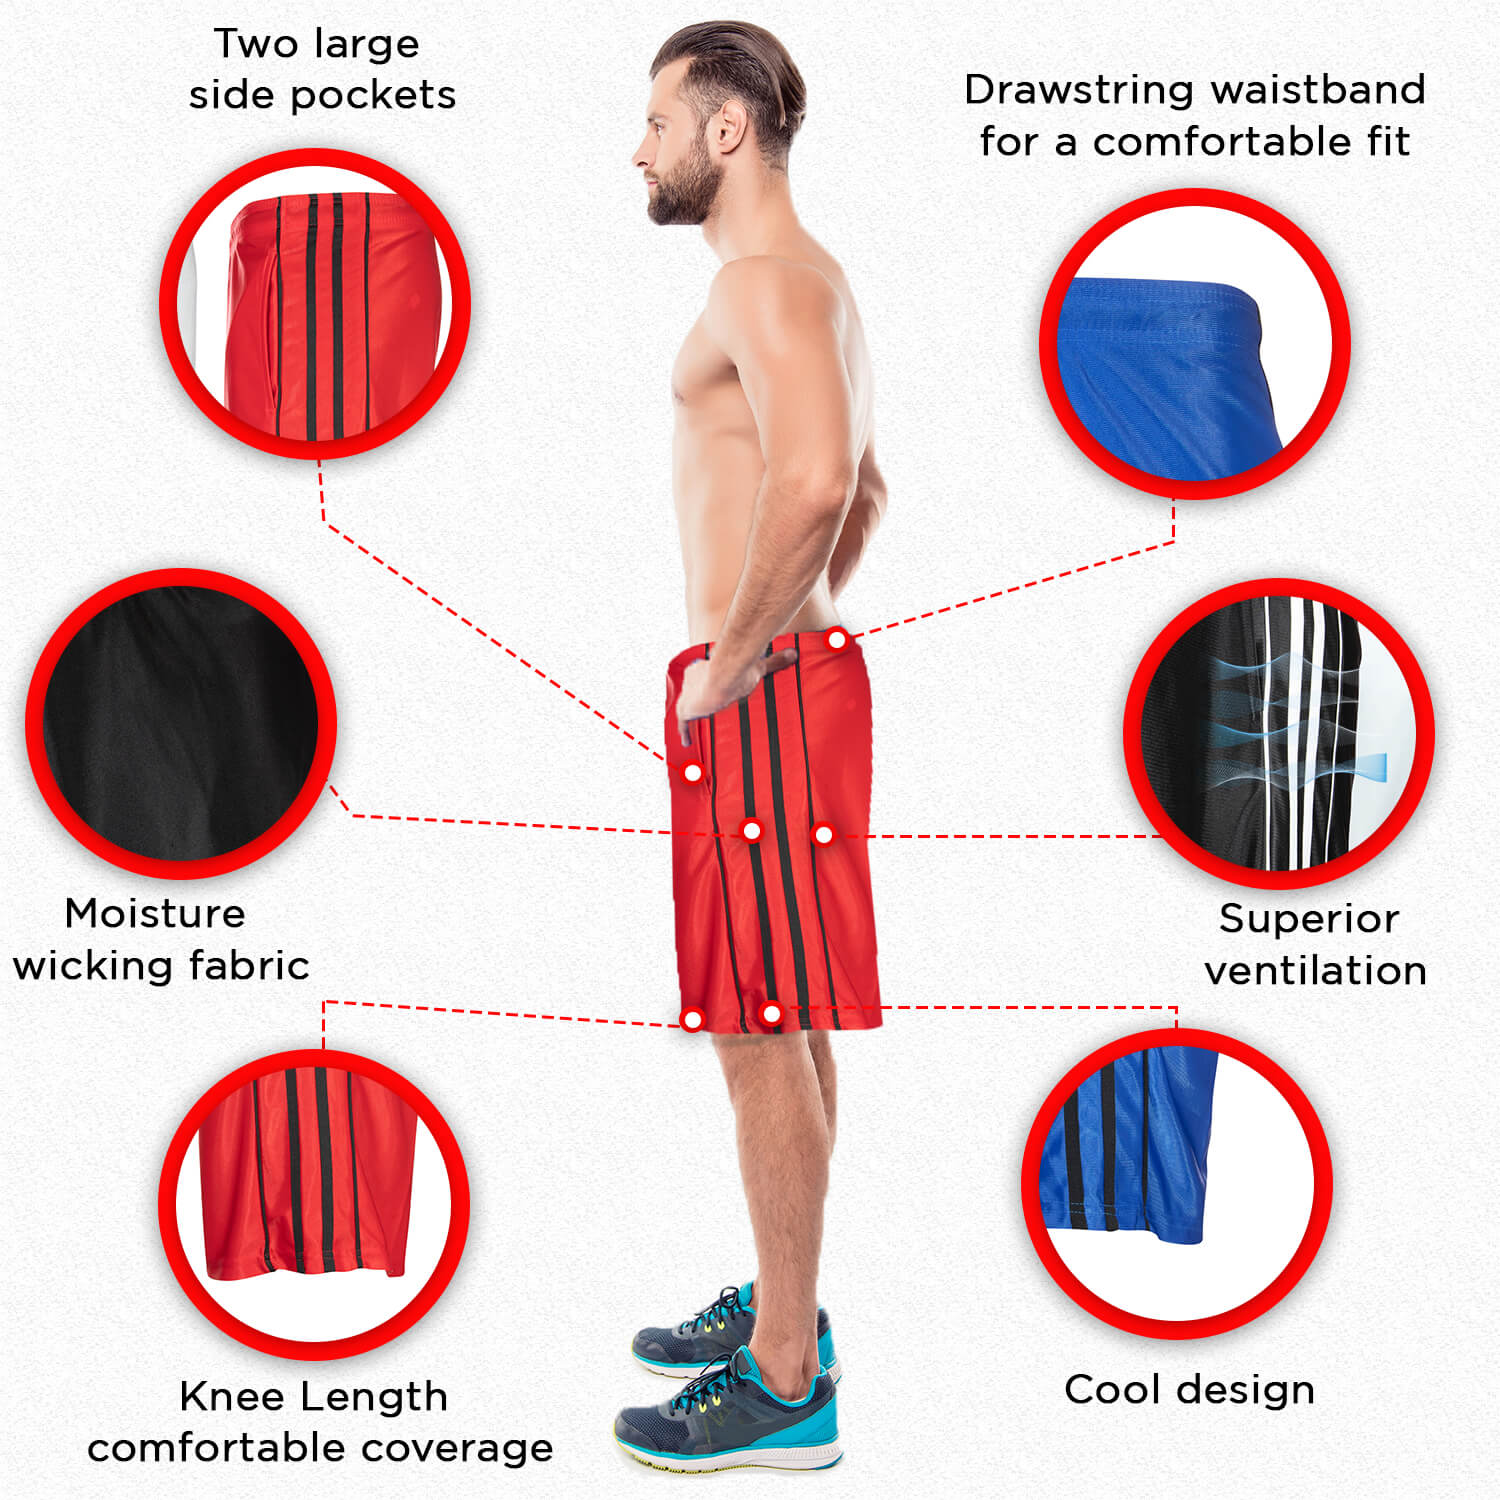 Infographic showing various angles and details of the product